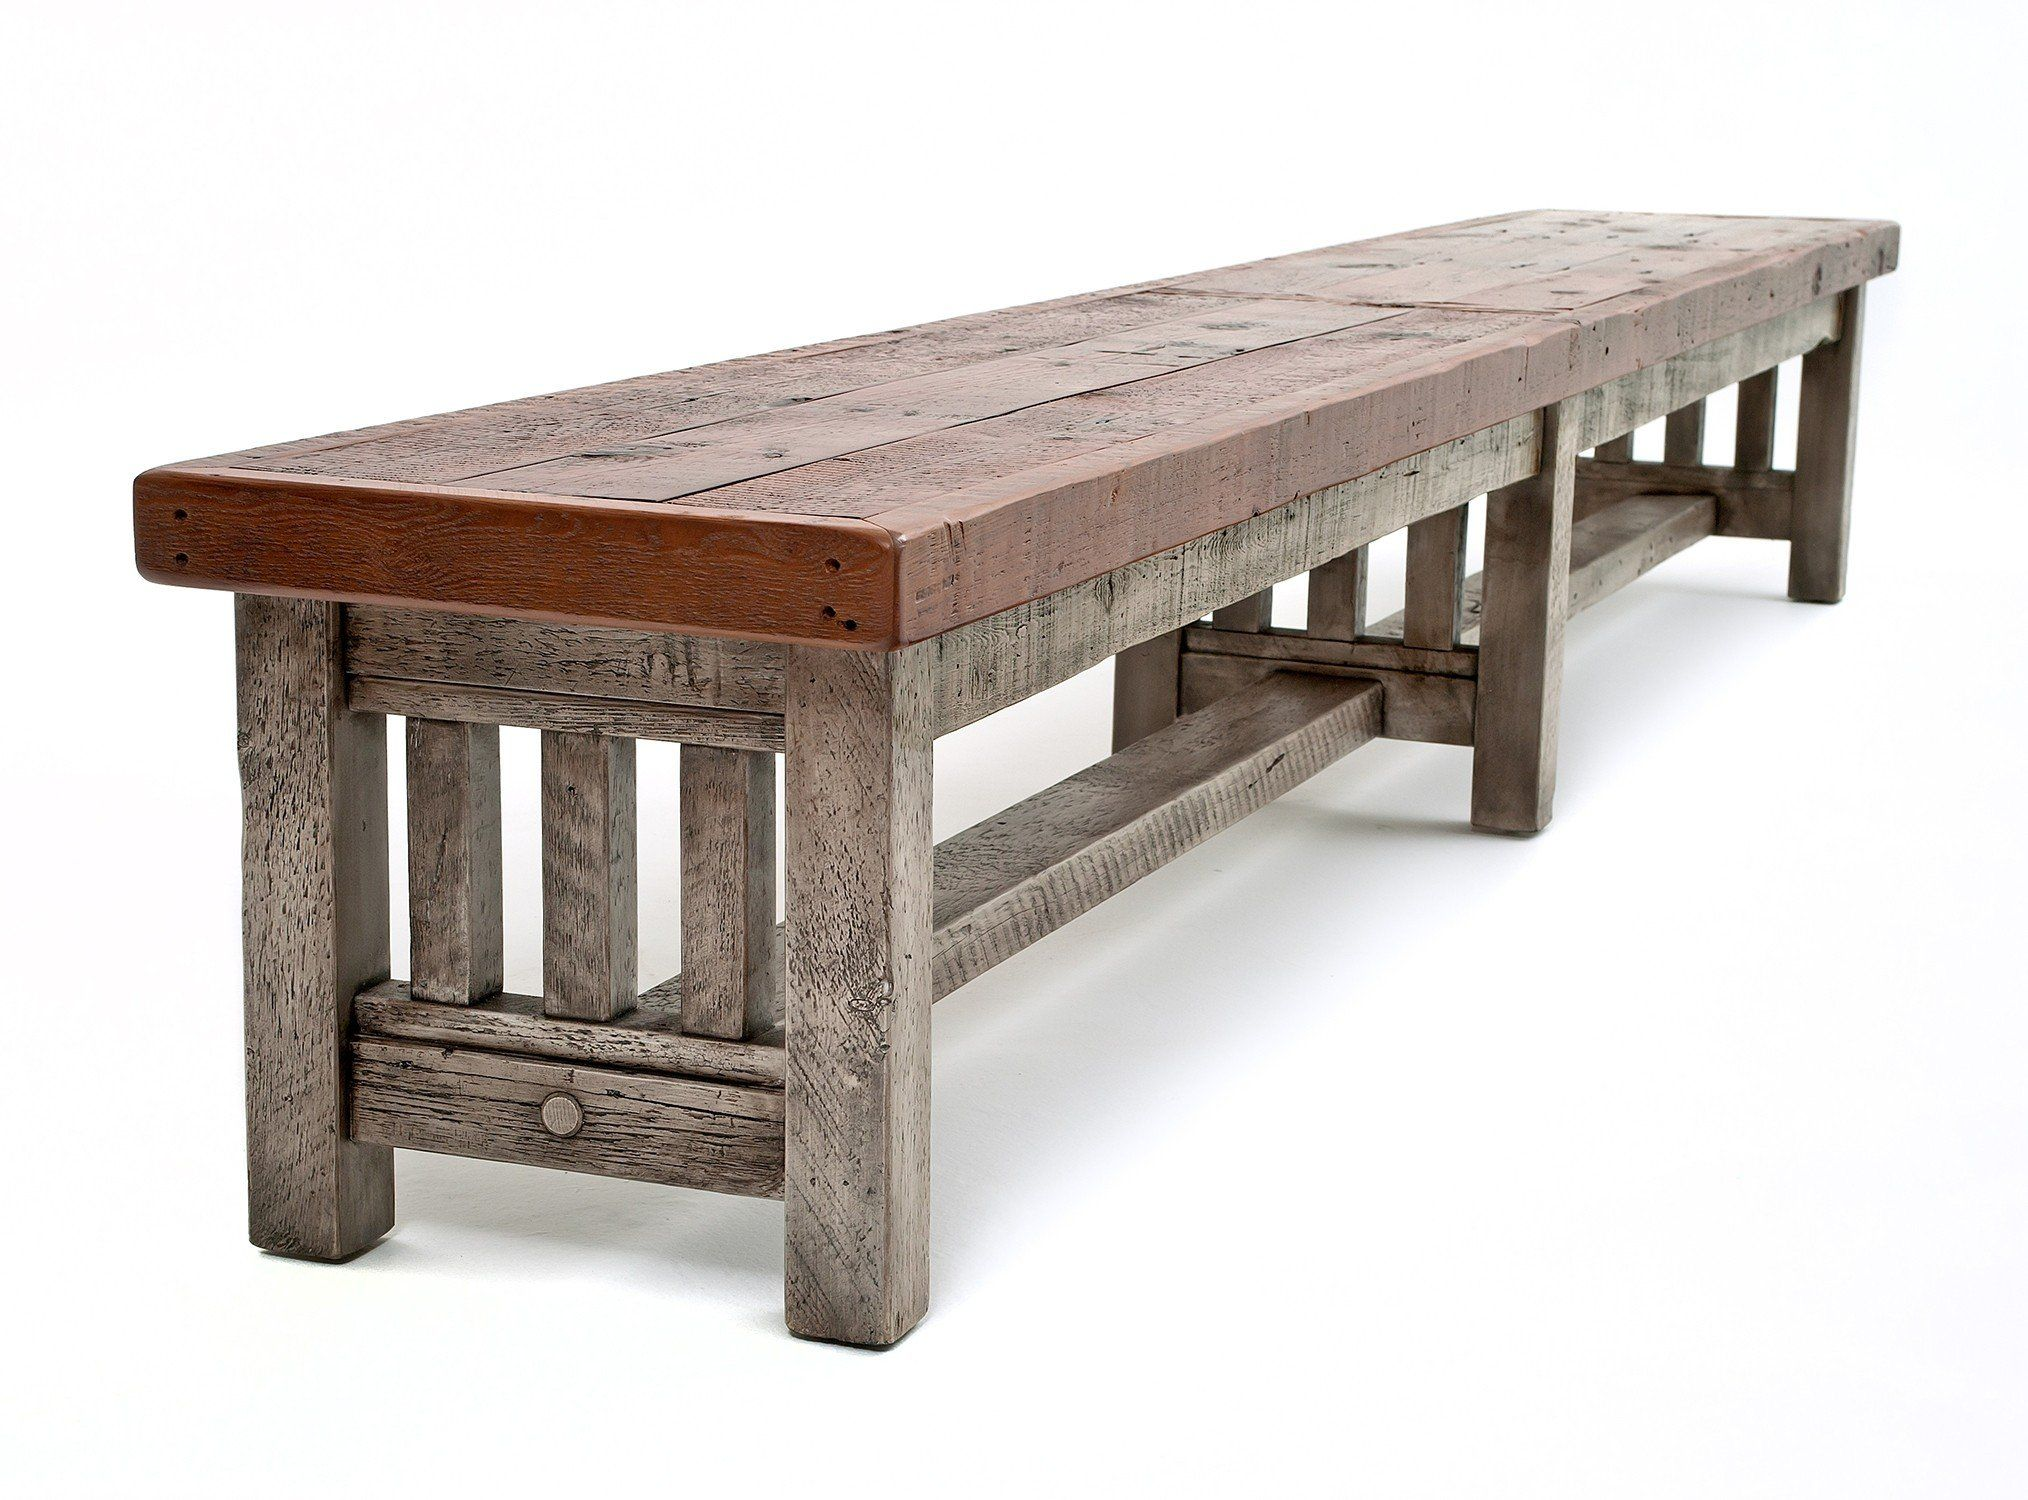 Rustic Reclaimed Barn Wood Mission Style Dining Bench In 2020 Barn Wood Reclaimed Barn Wood Mission Style Furniture